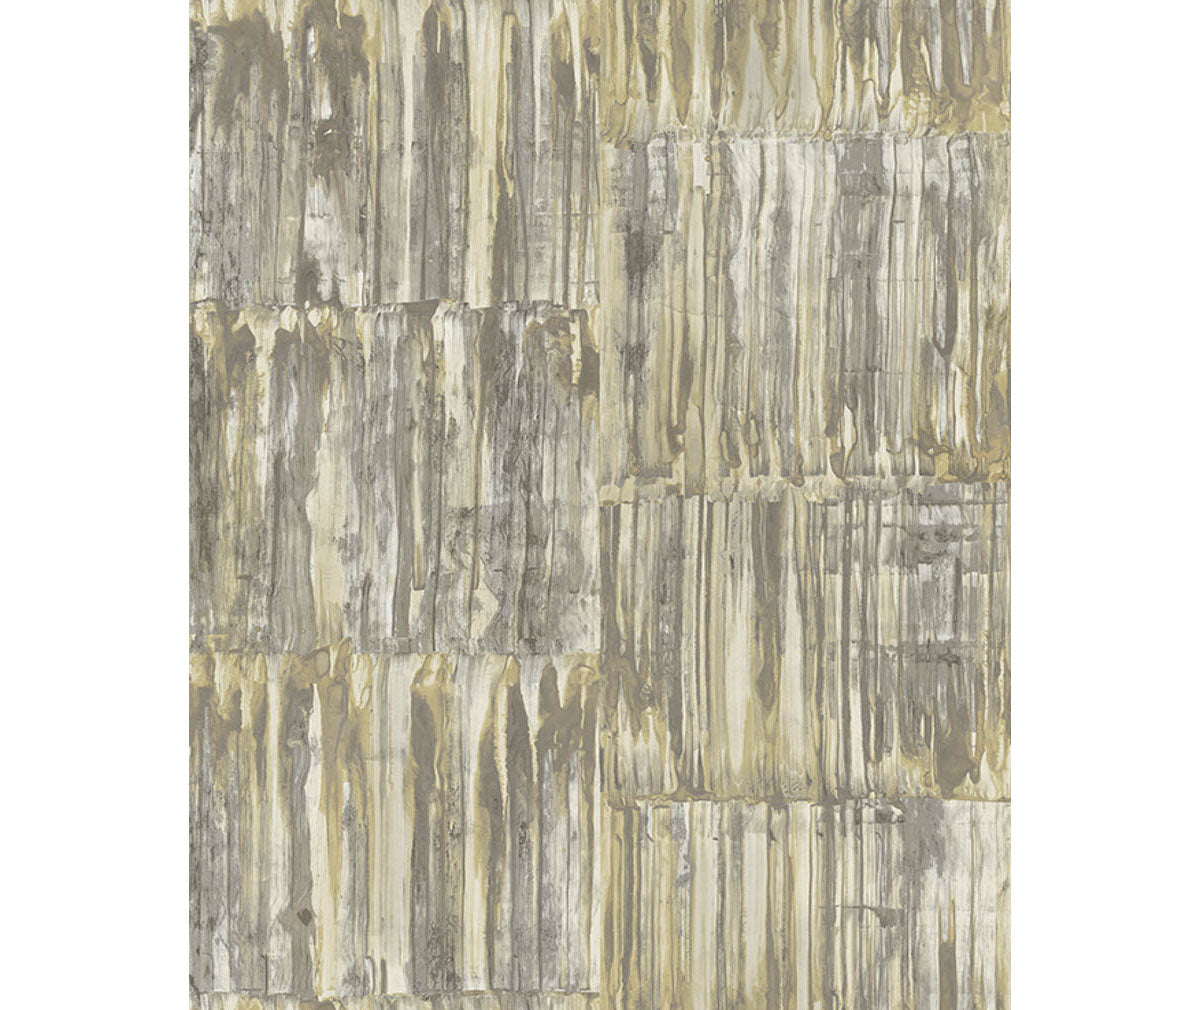 Patina Panels Yellow Metal Wallpaper available at Barrydowne Paint